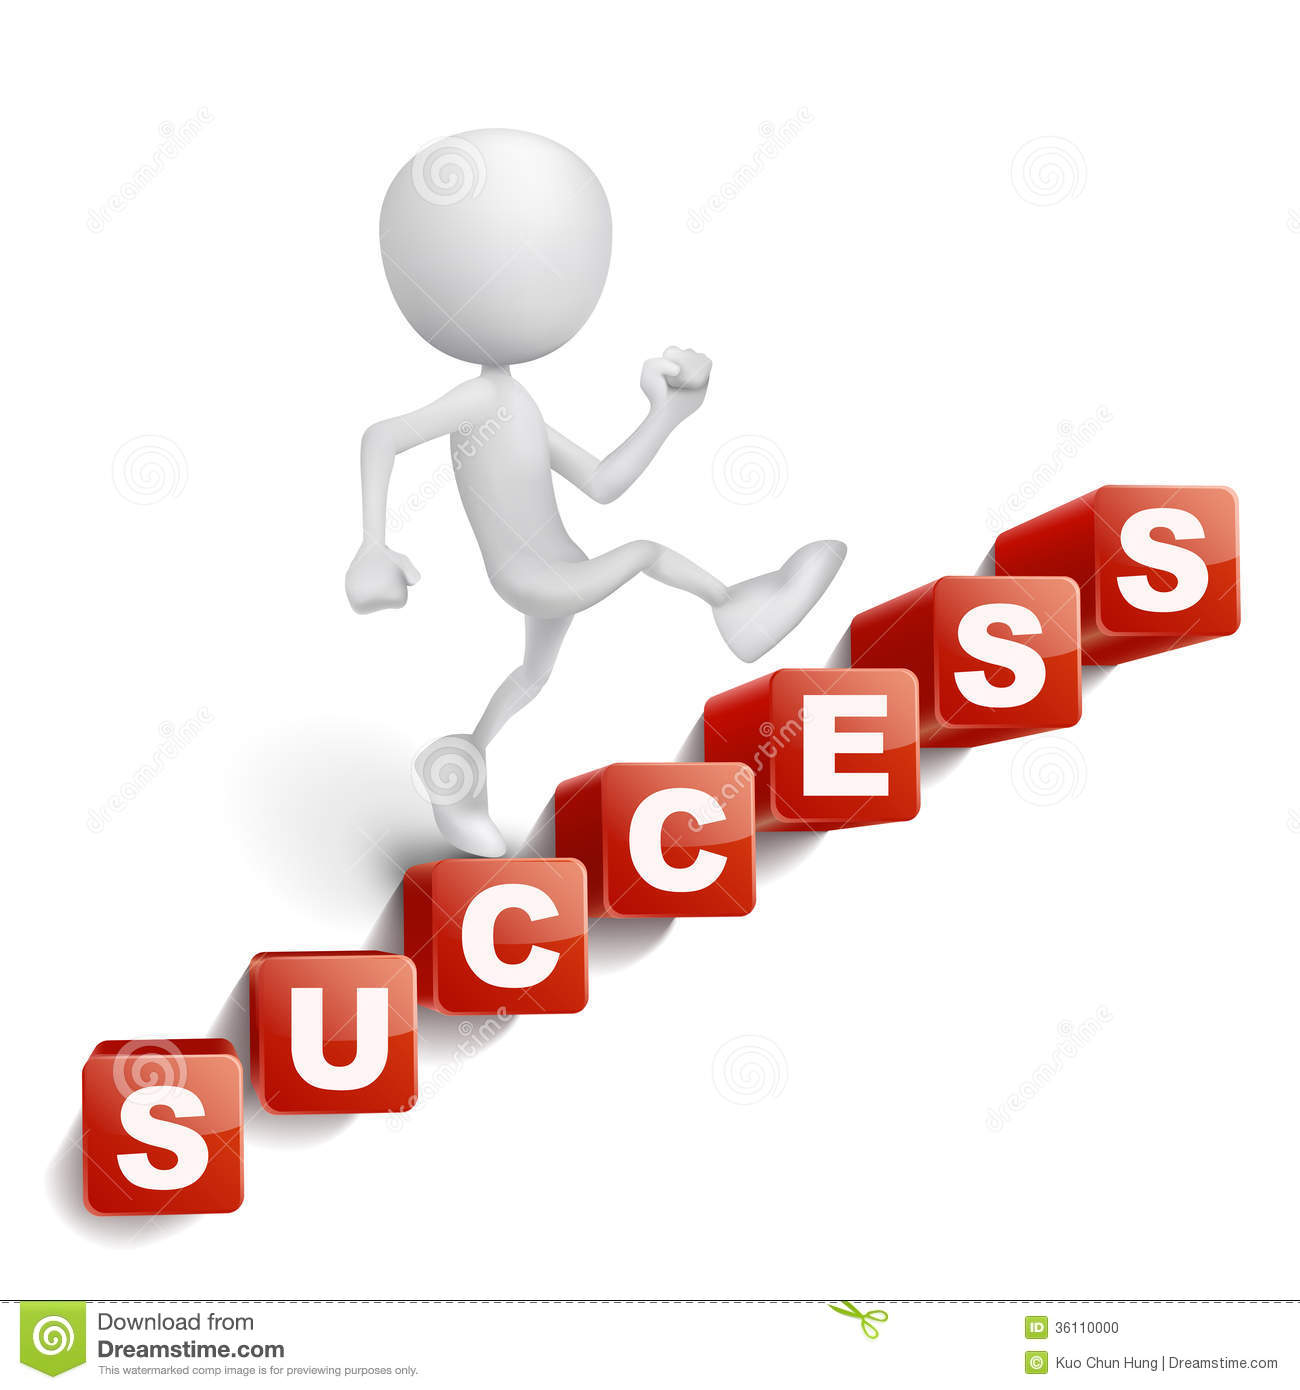 Success clipart images free download jpg royalty free Success clipart images free download - ClipartFest jpg royalty free